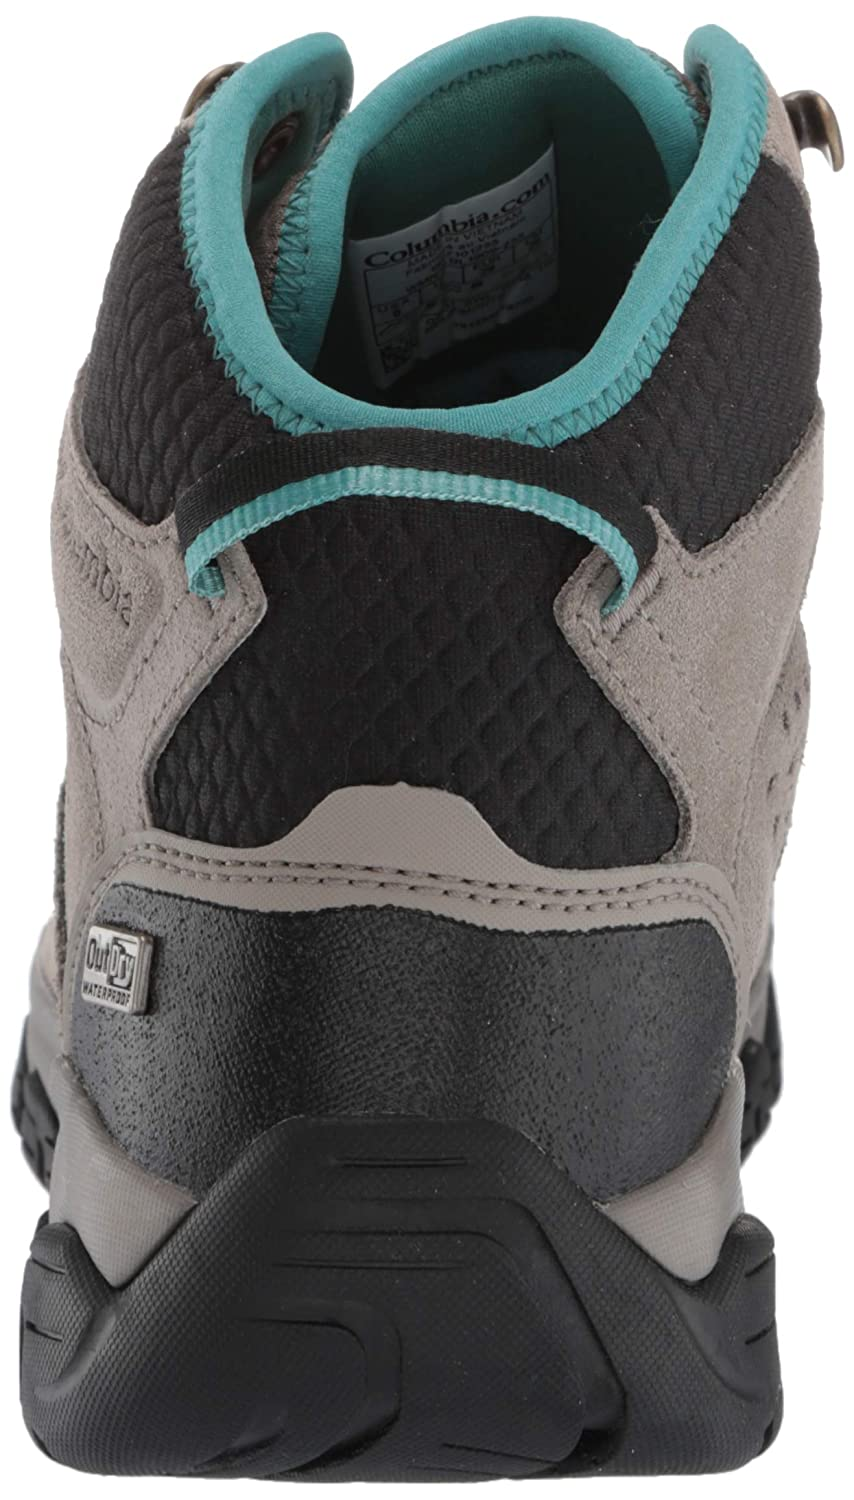 6.5 Regular US ti grey steel Columbia Womens Isoterra Mid Outdry Boot fairytale